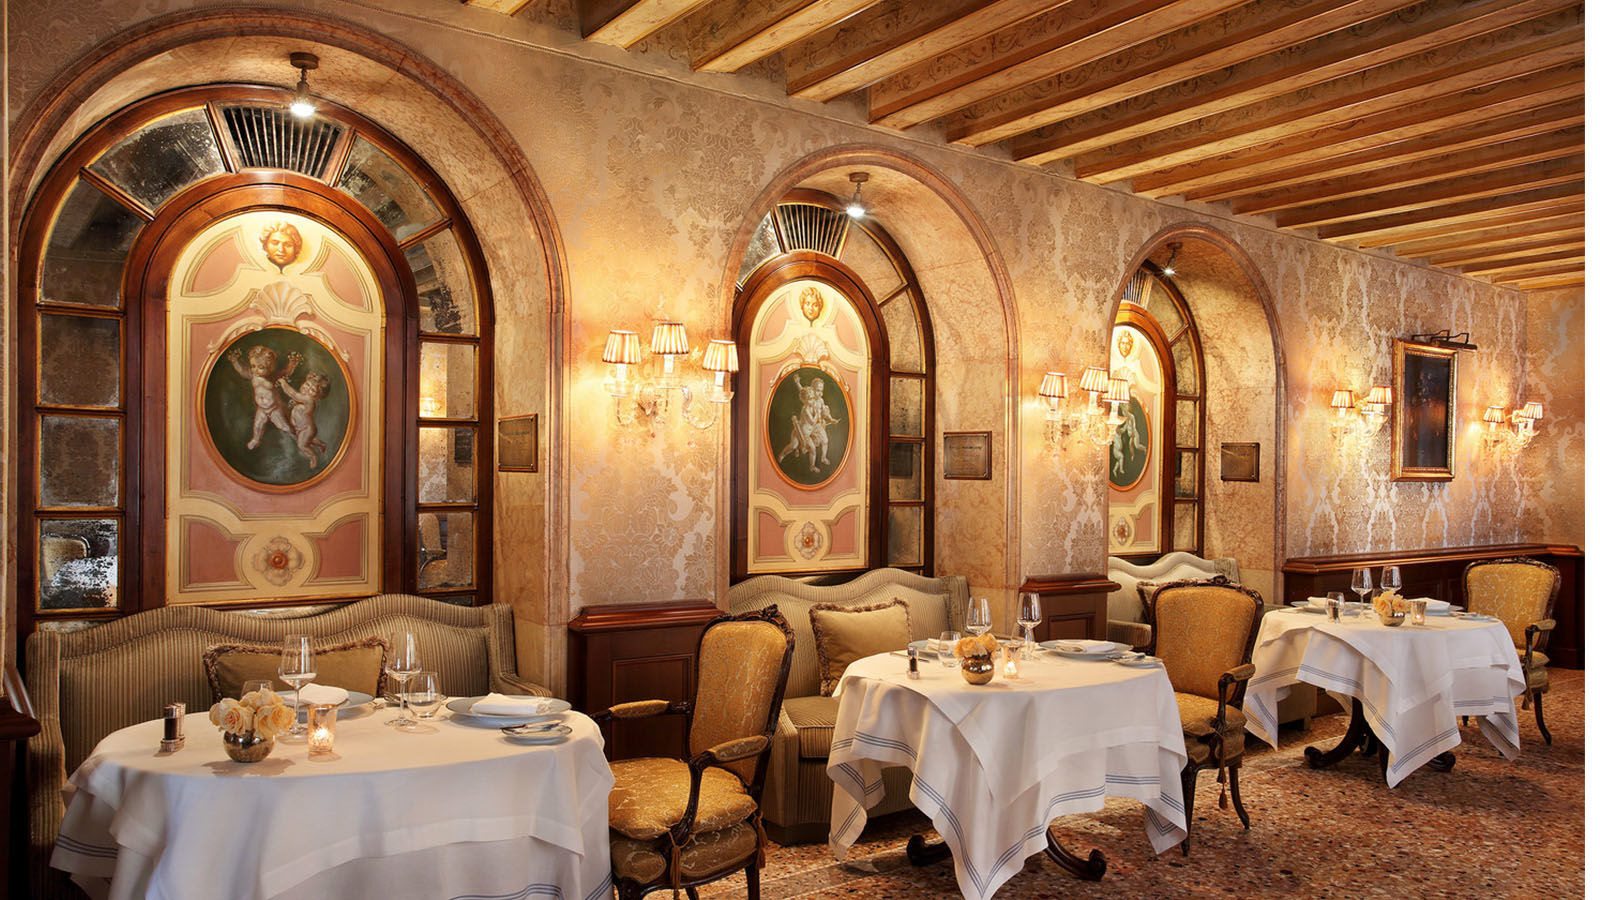 Club-del-Doge-Restaurant---inside-view---The-Gritti-Palace